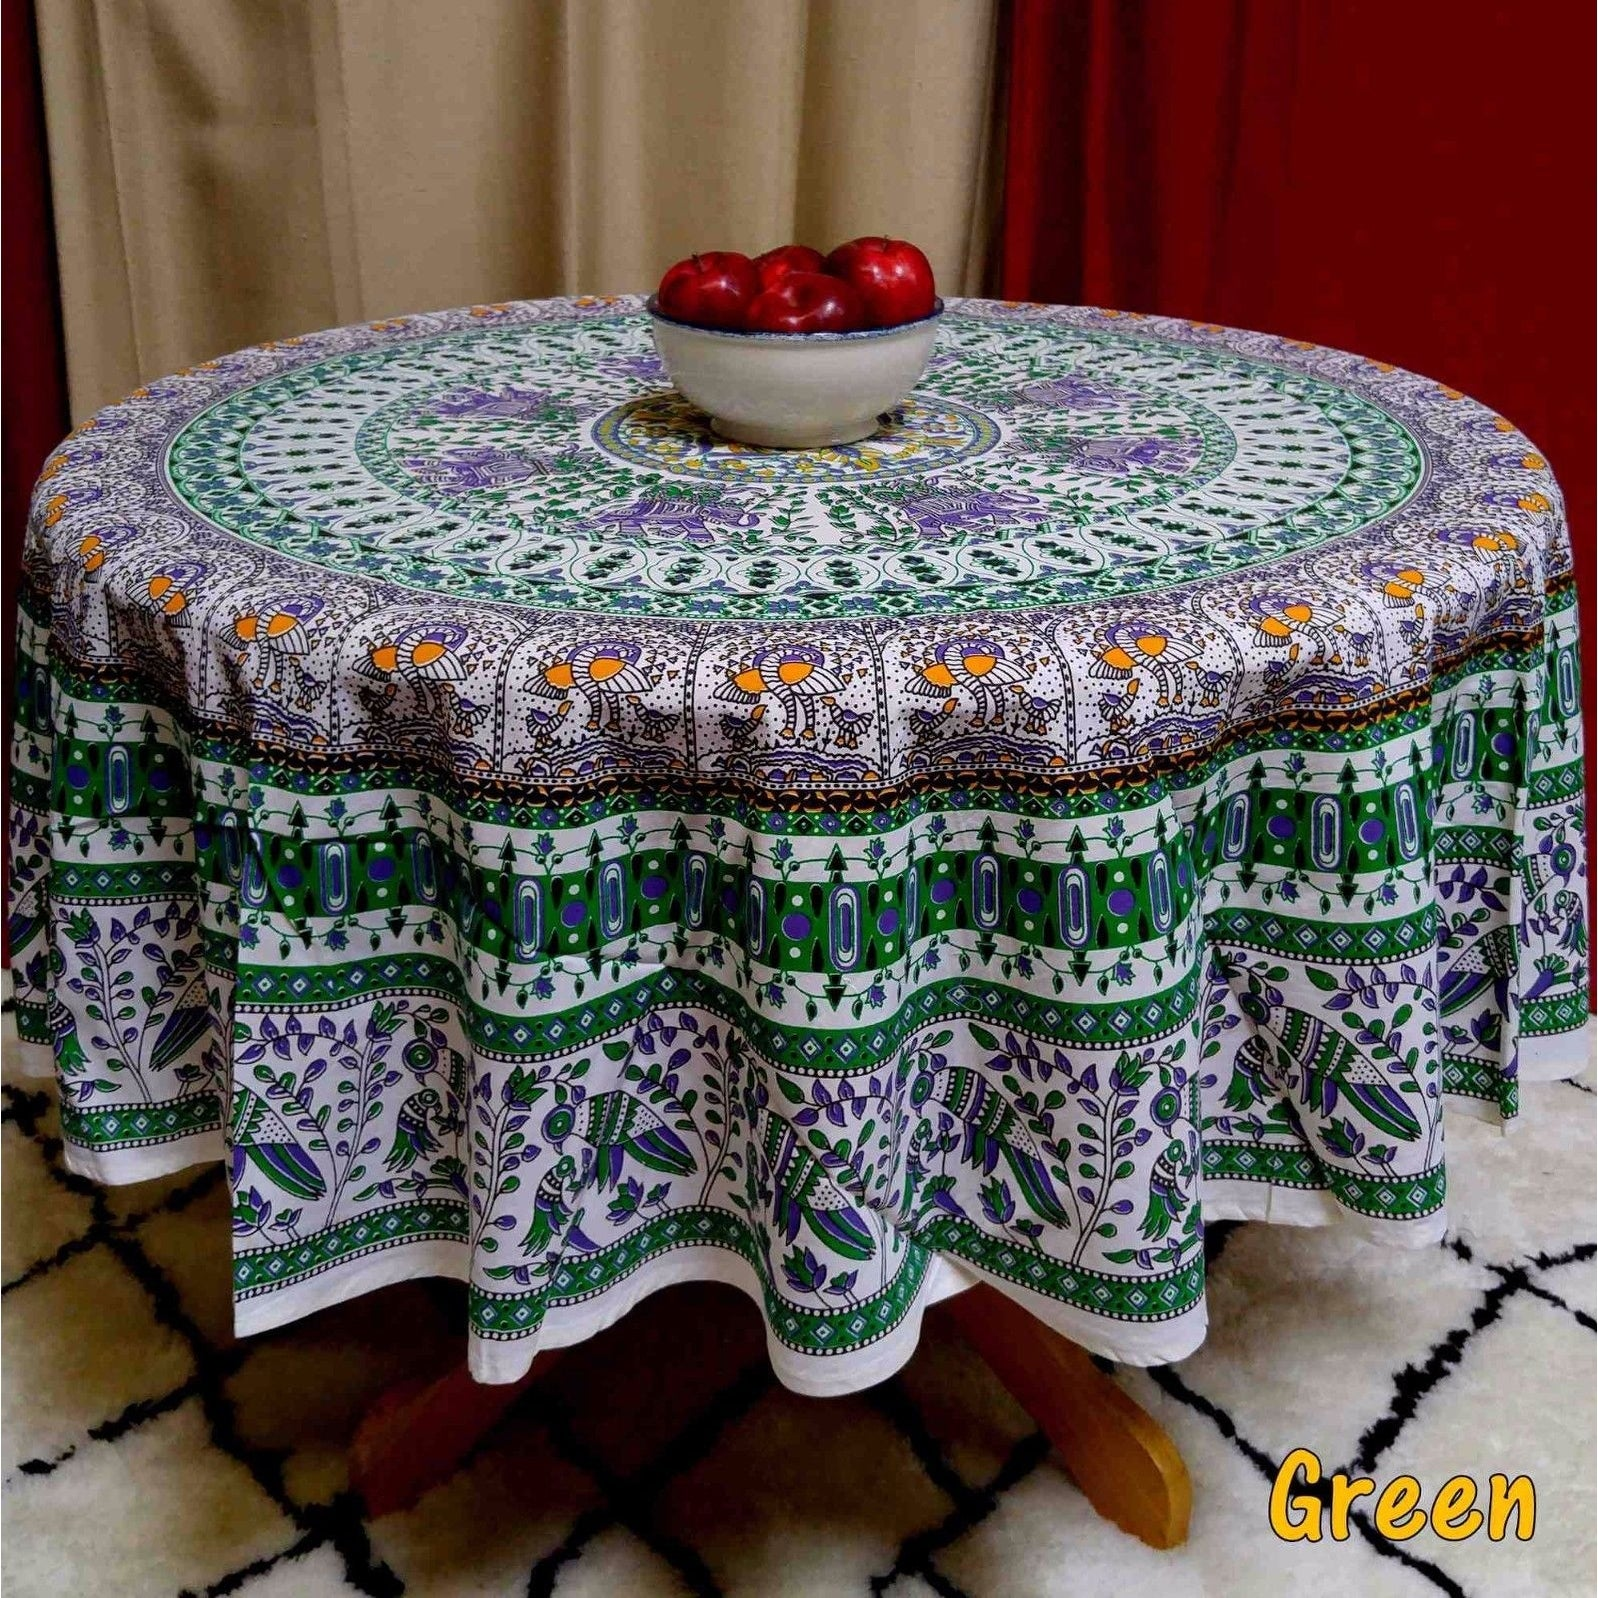 Thumbnail 8, Elephant and Peacock Print 100% Cotton Tablecloth Round 69 inches Blue Green Red Teal. Changes active main hero.